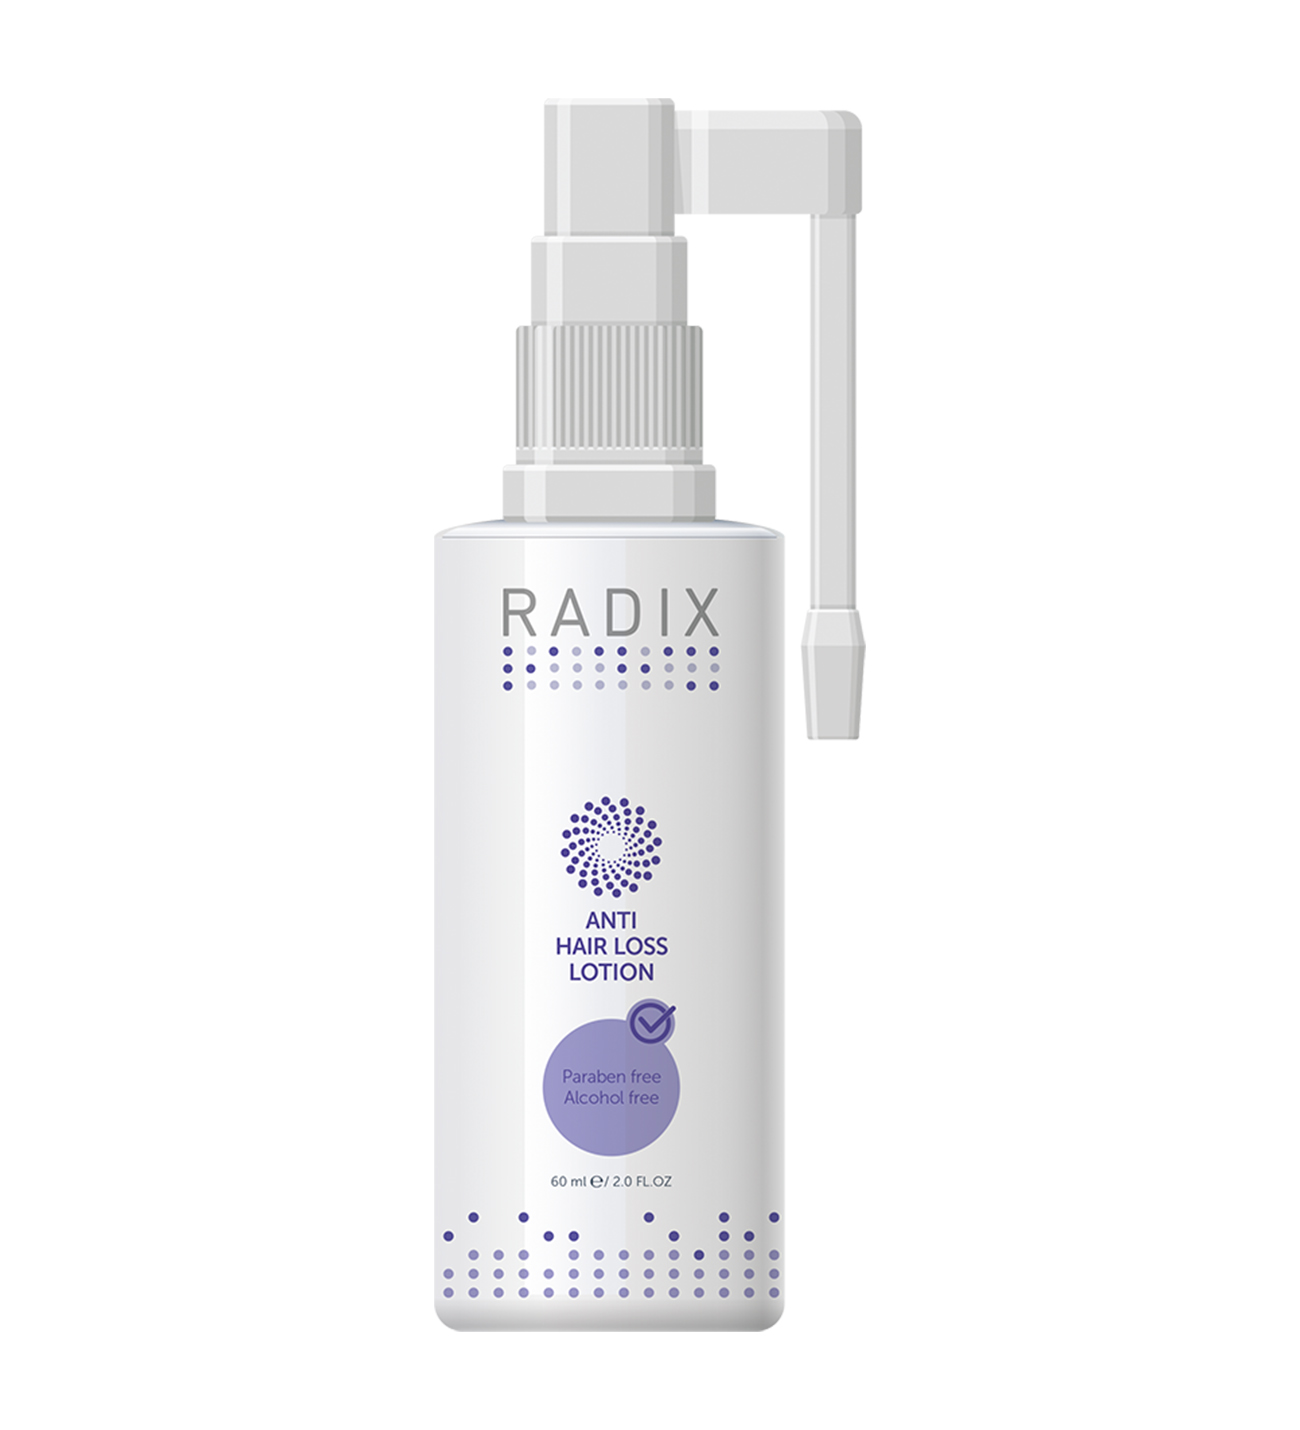 RADIX SPILL AGAINST LOTION 60ML